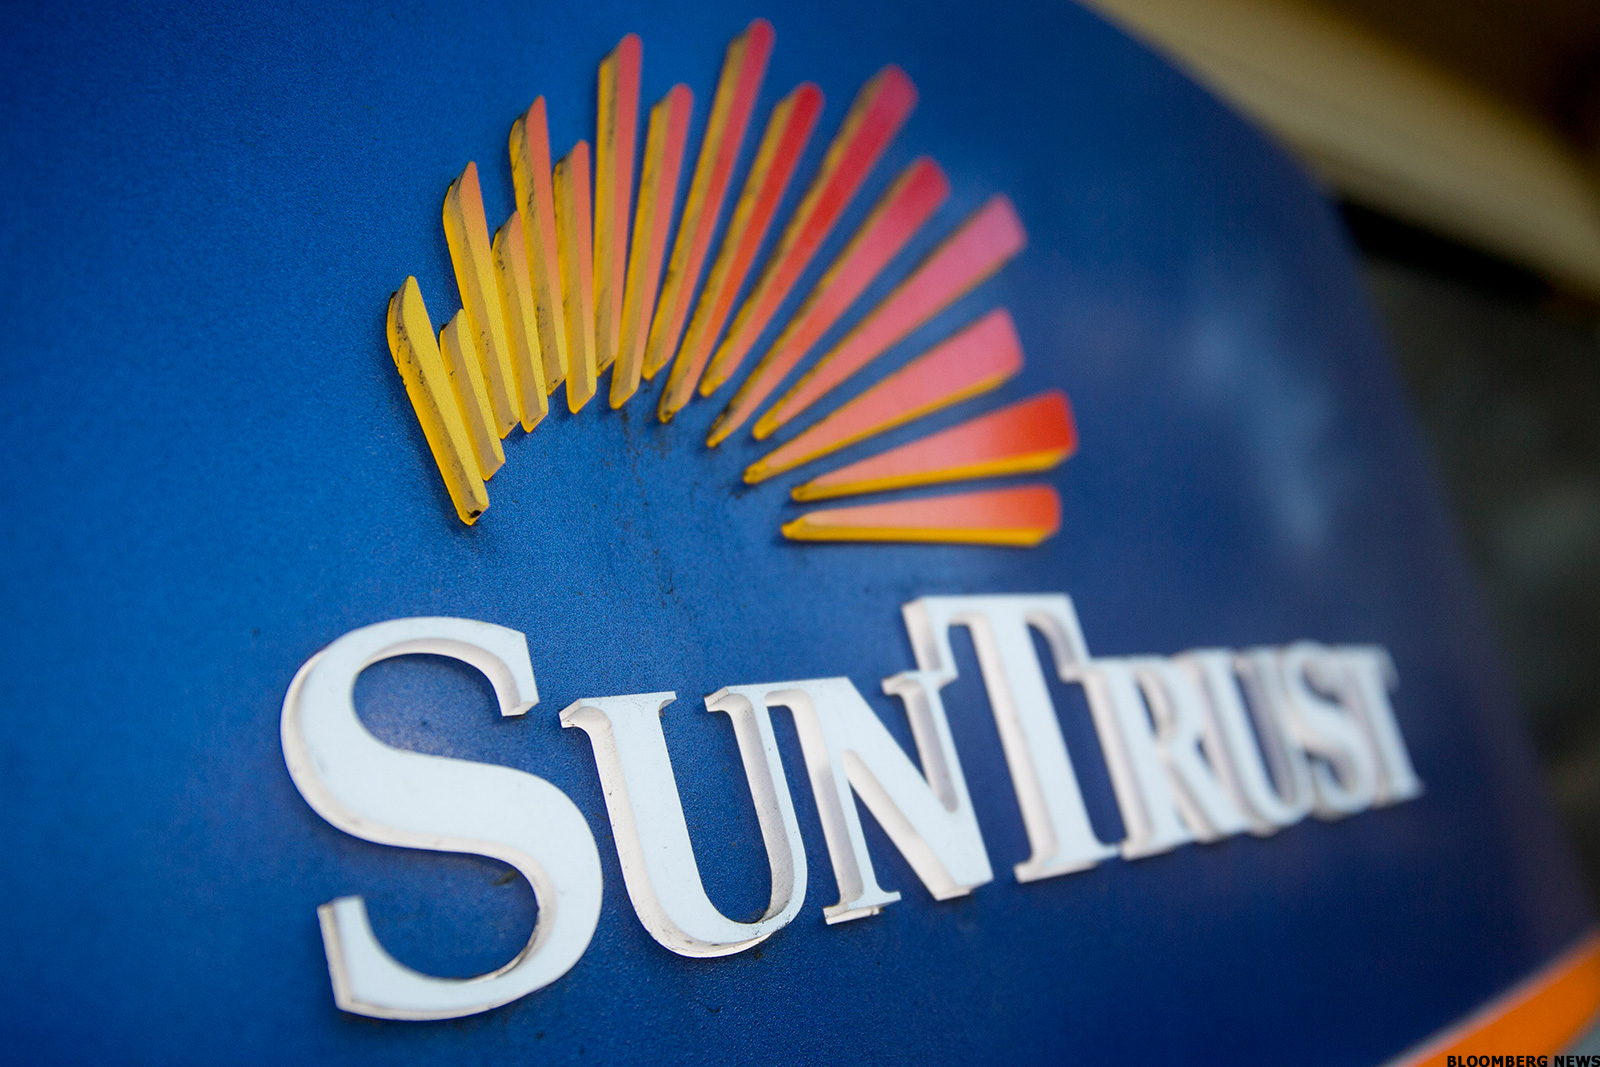 How to Trade BB&T and SunTrust Following Merger News - TheStreet